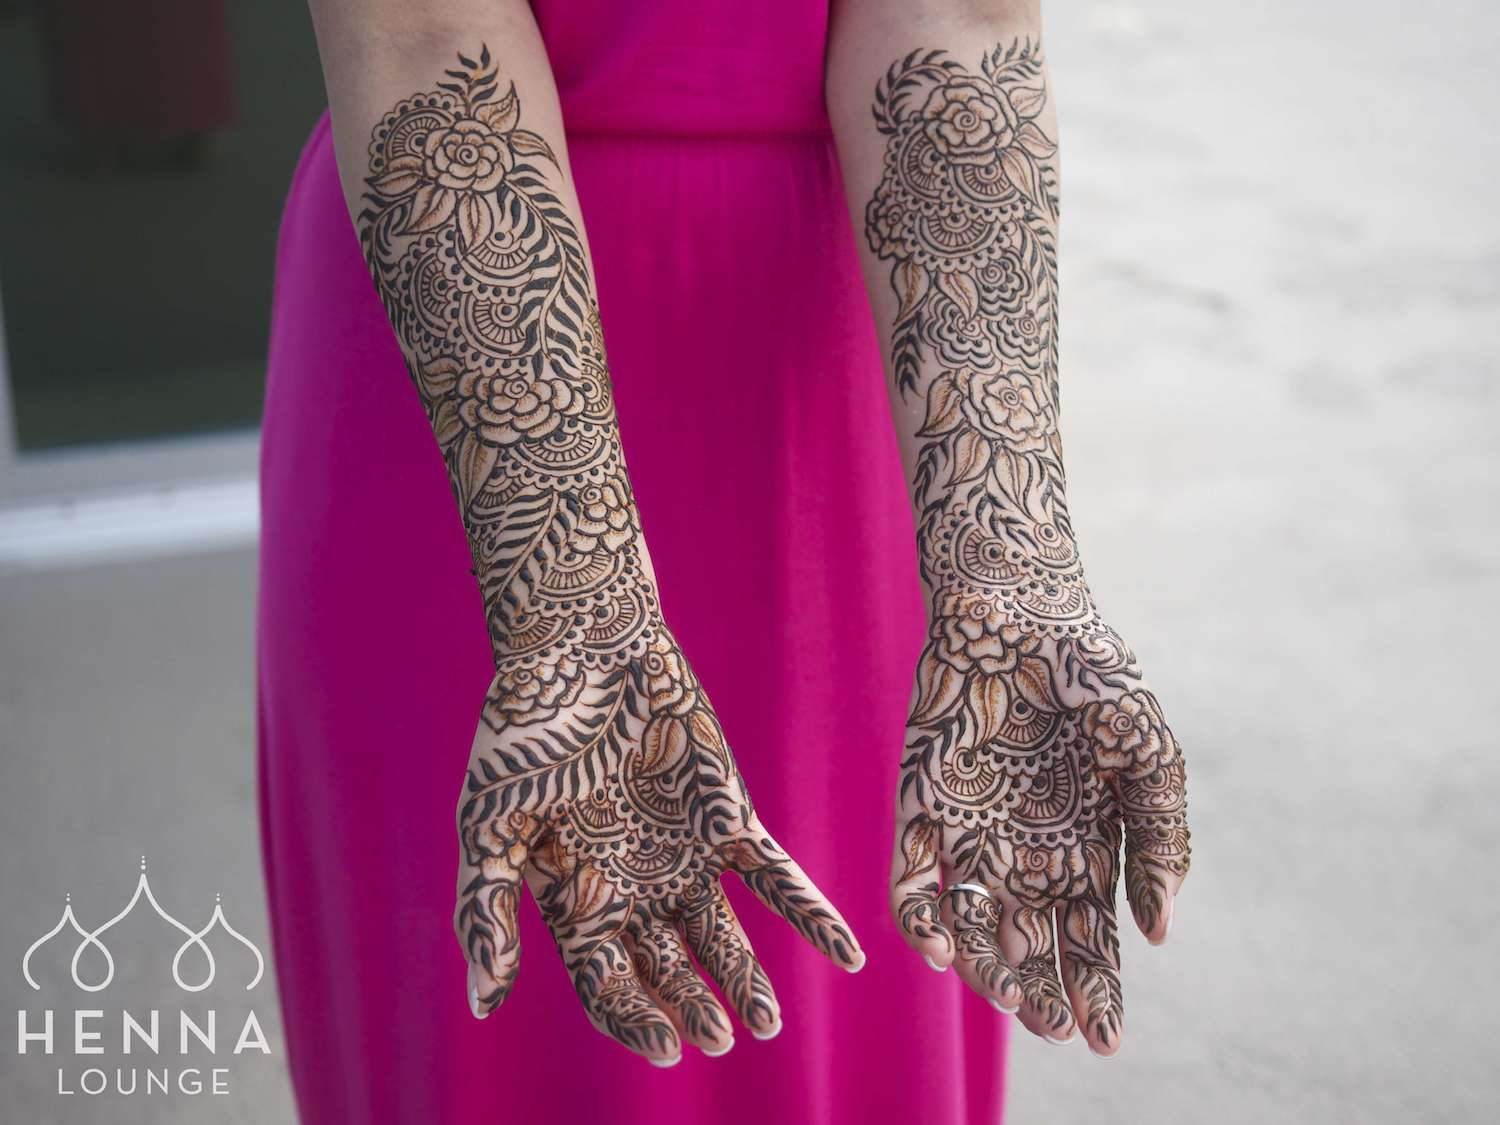 Destination wedding henna Playa del Carmen by www.hennalounge.com